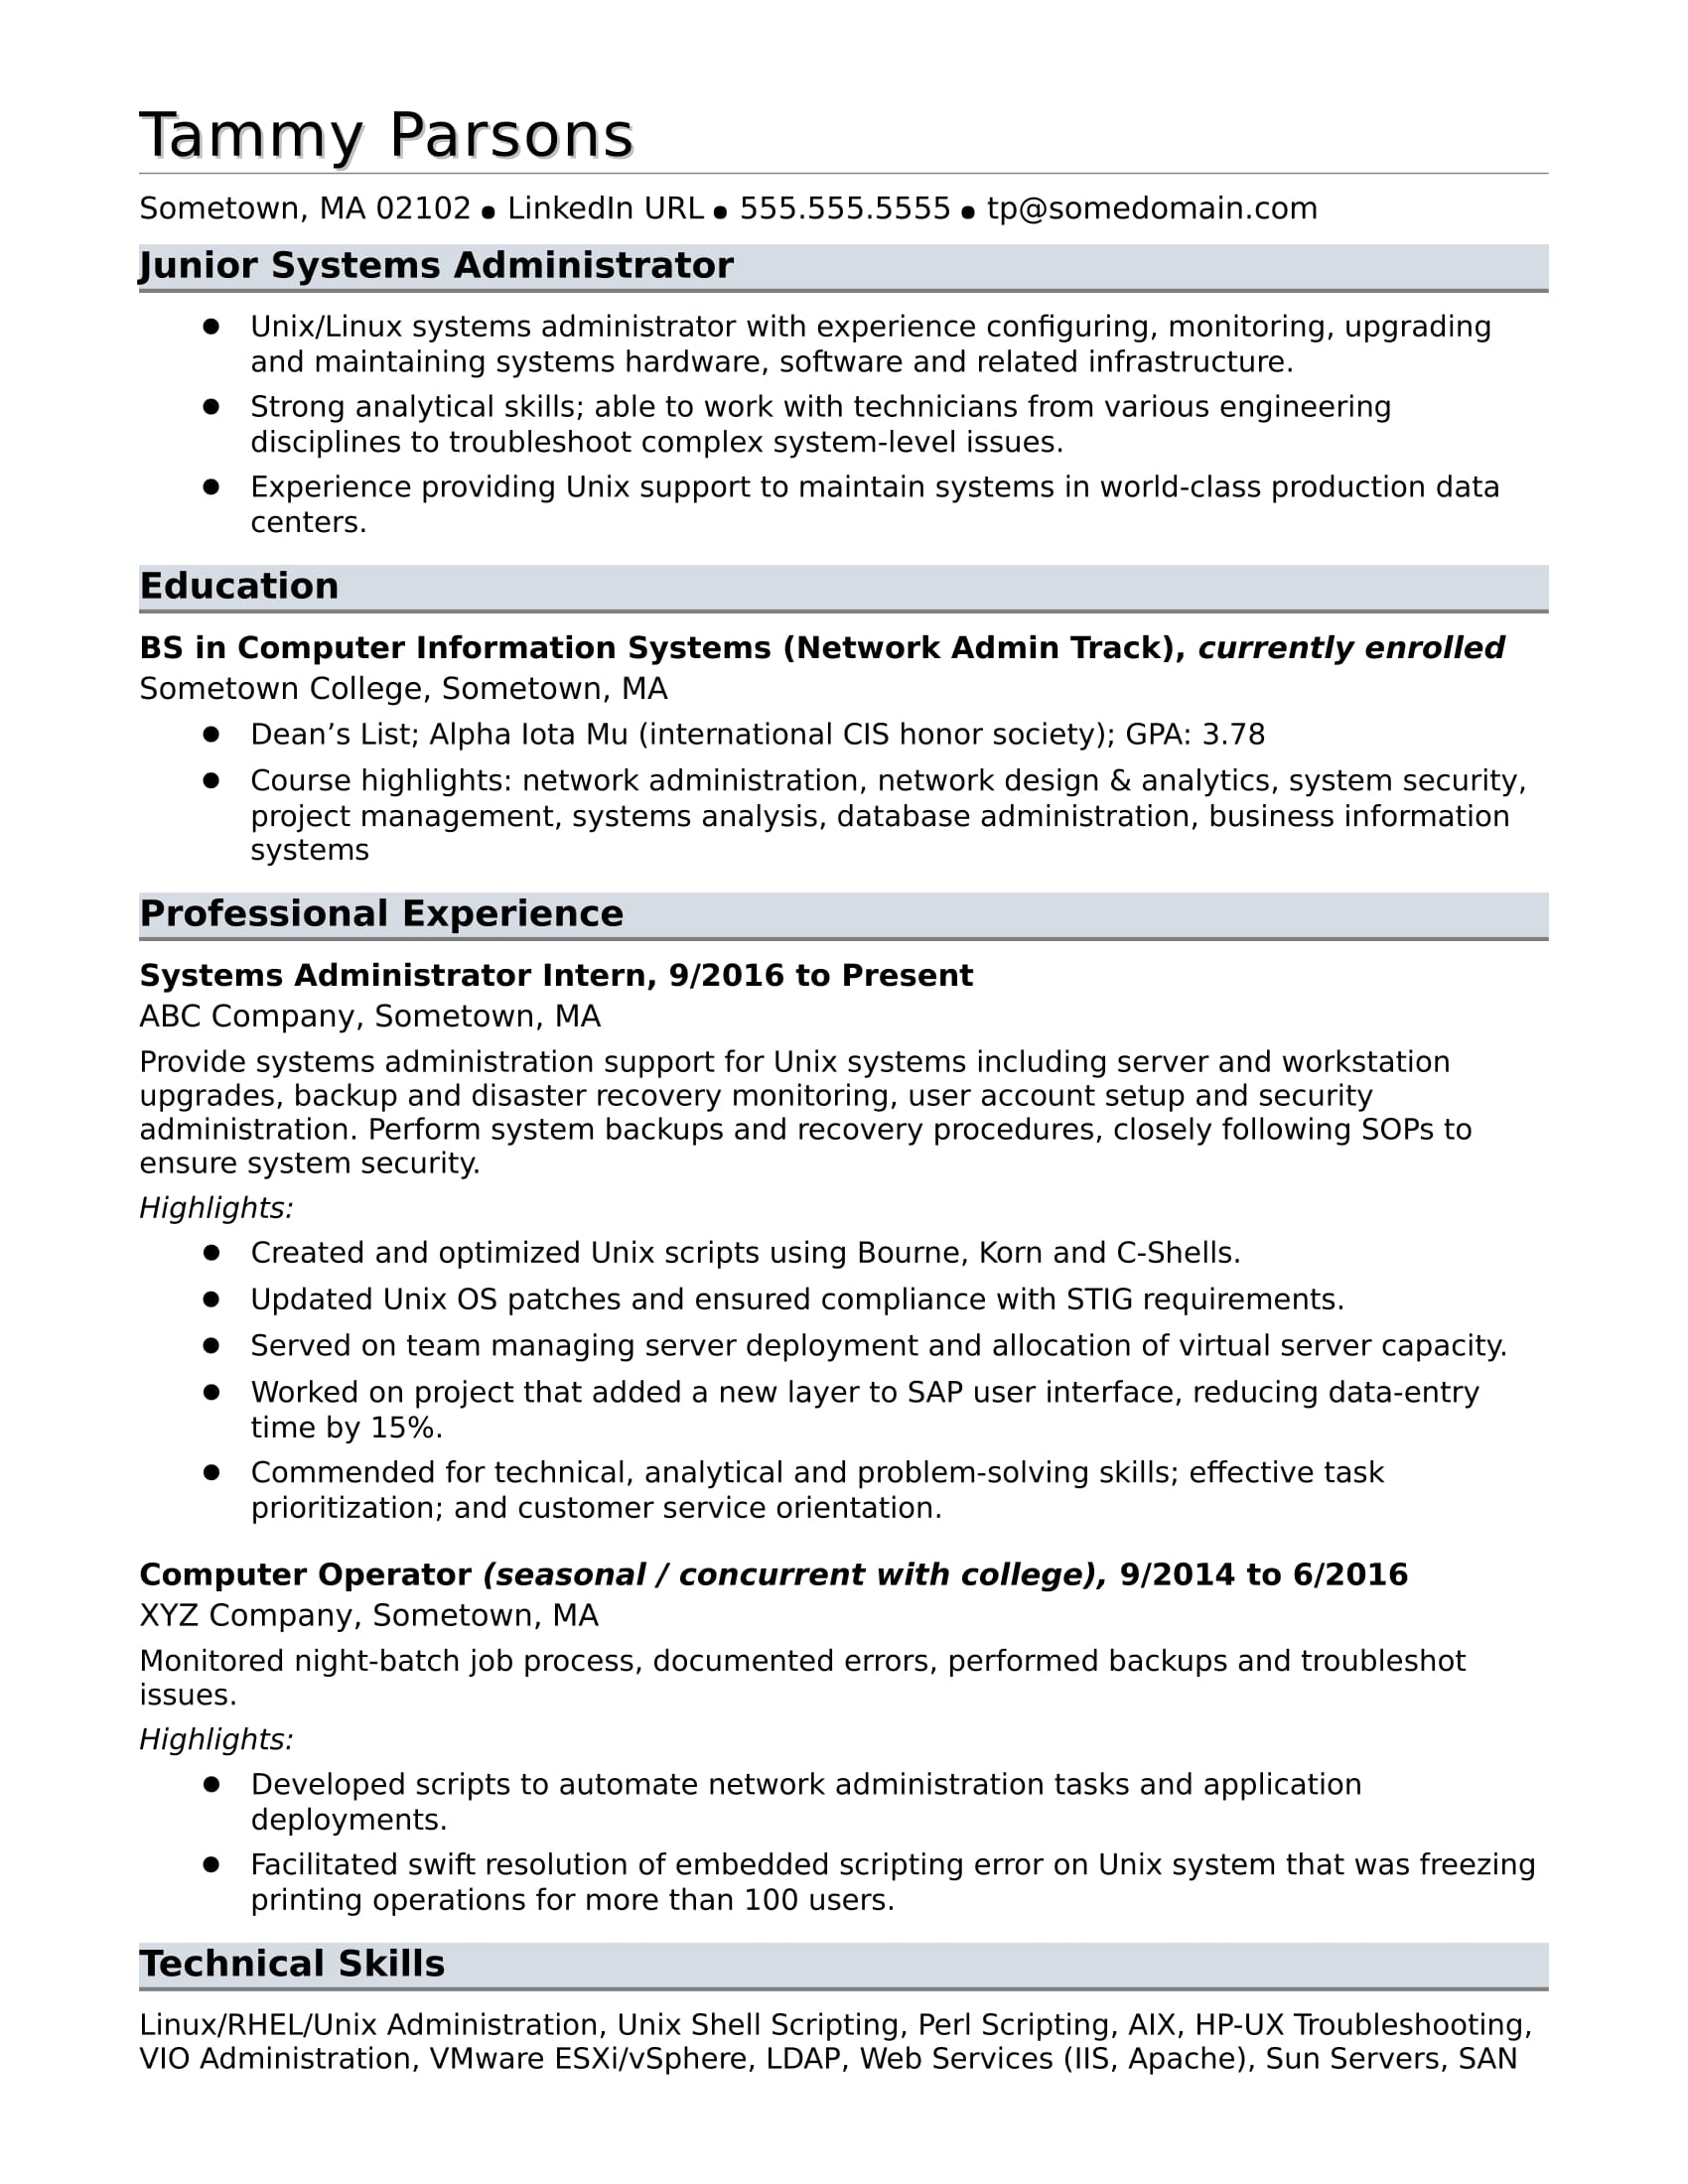 Beautiful Sample Resume For An Entry Level Systems Administrator